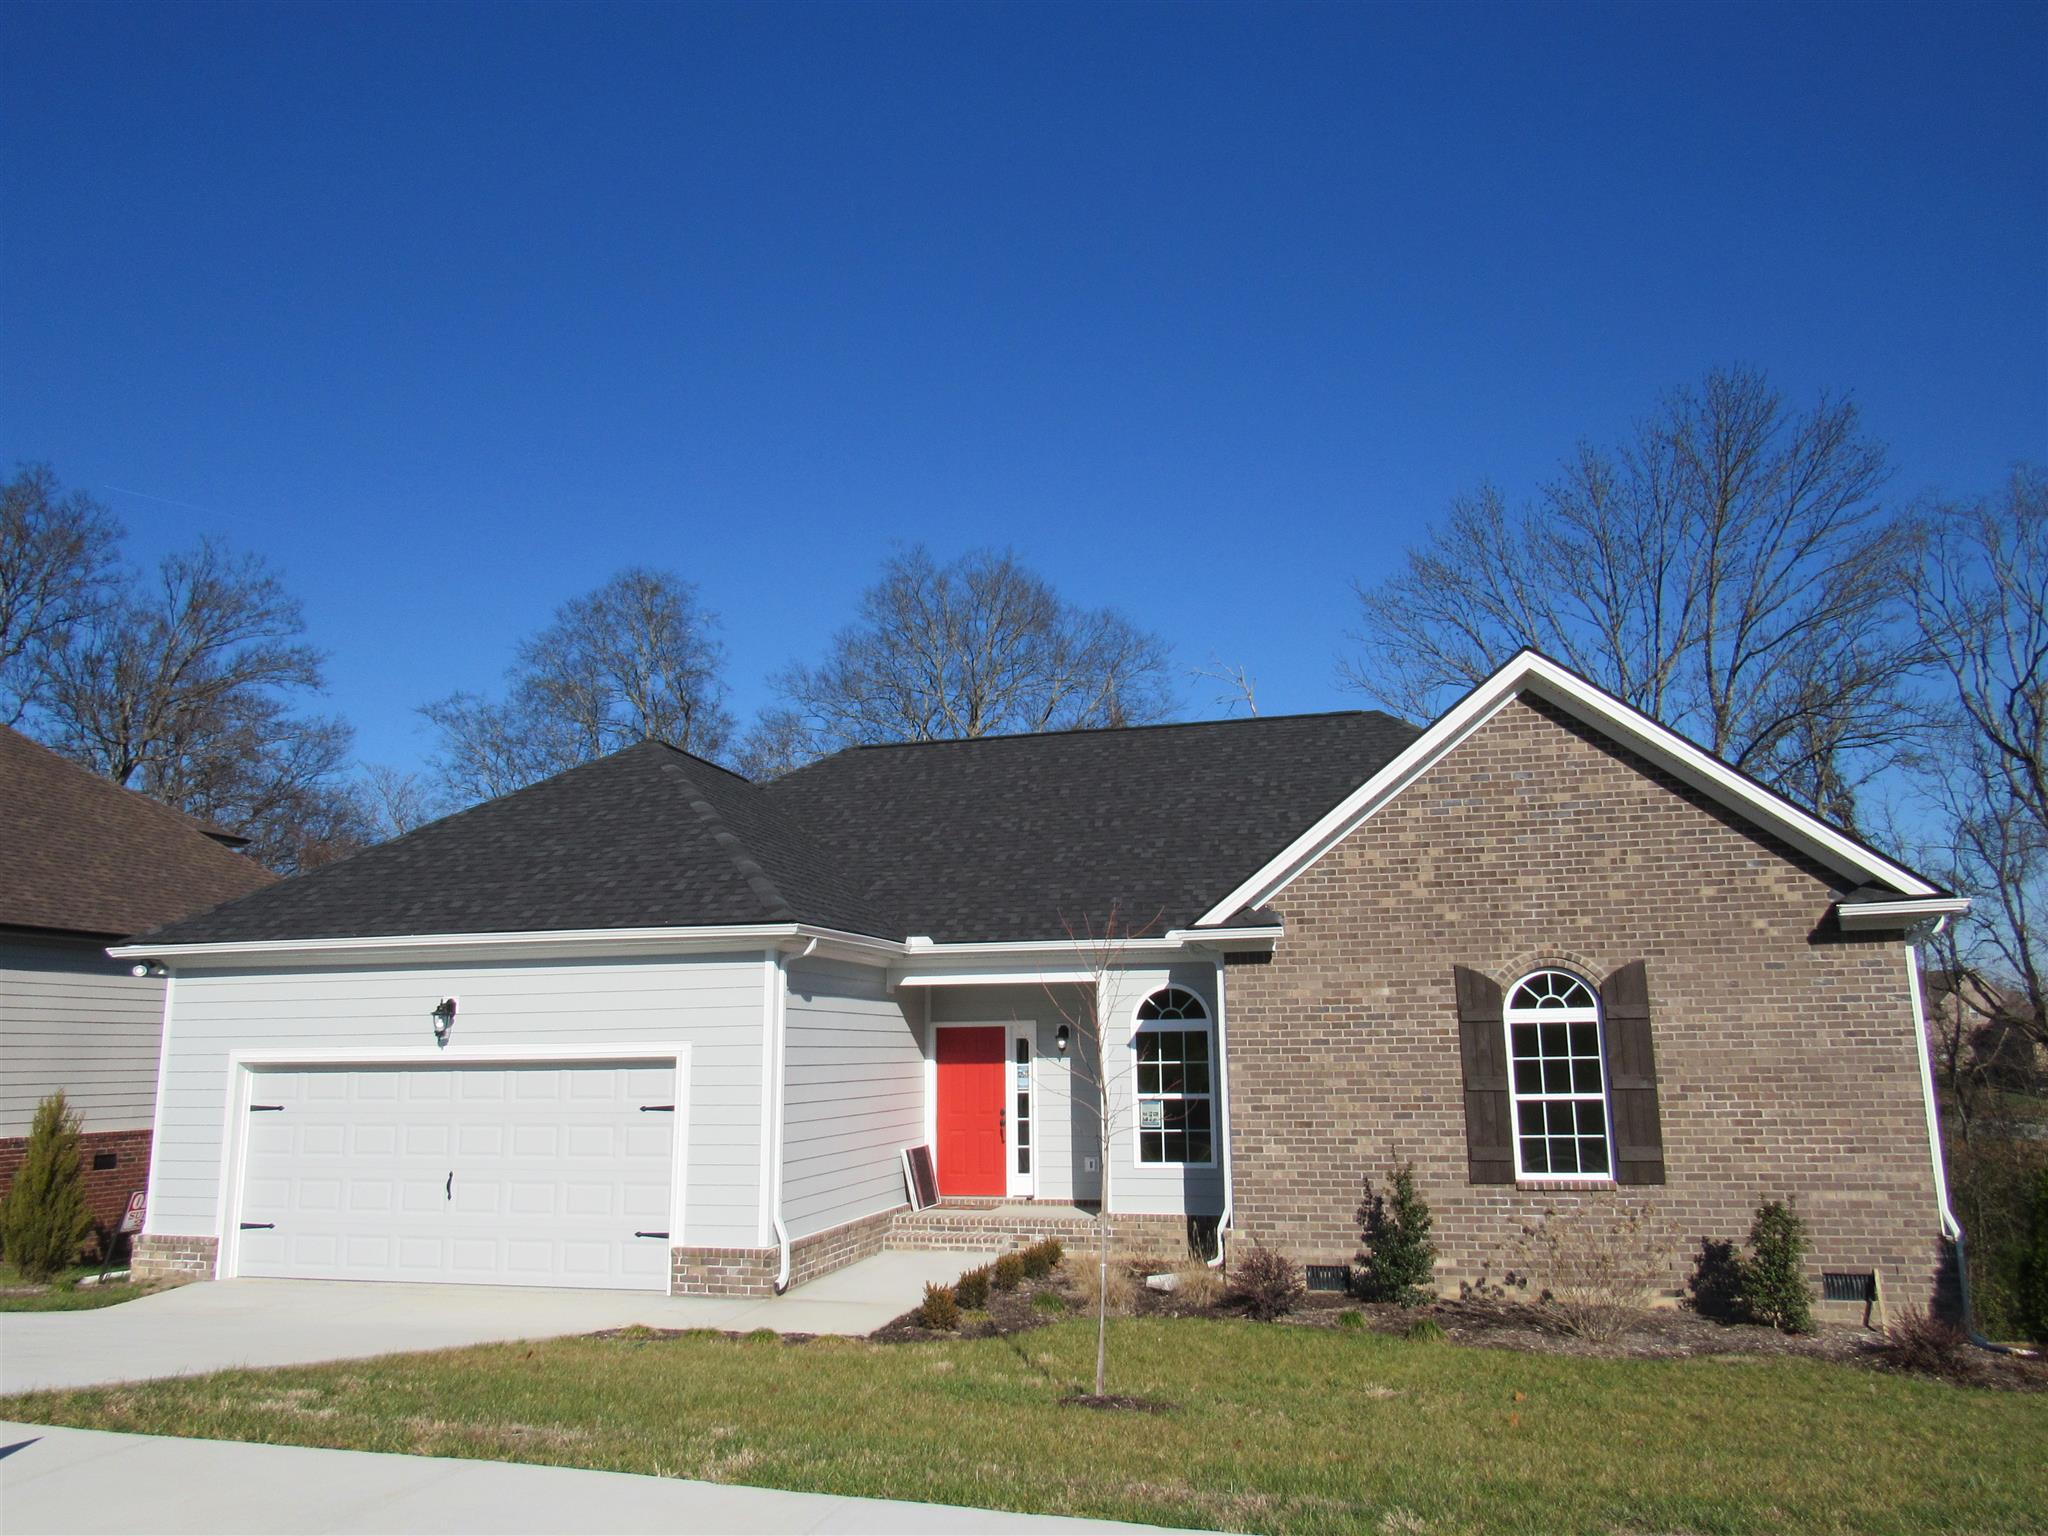 805 Tanager Pl, Lebanon in Wilson County County, TN 37087 Home for Sale